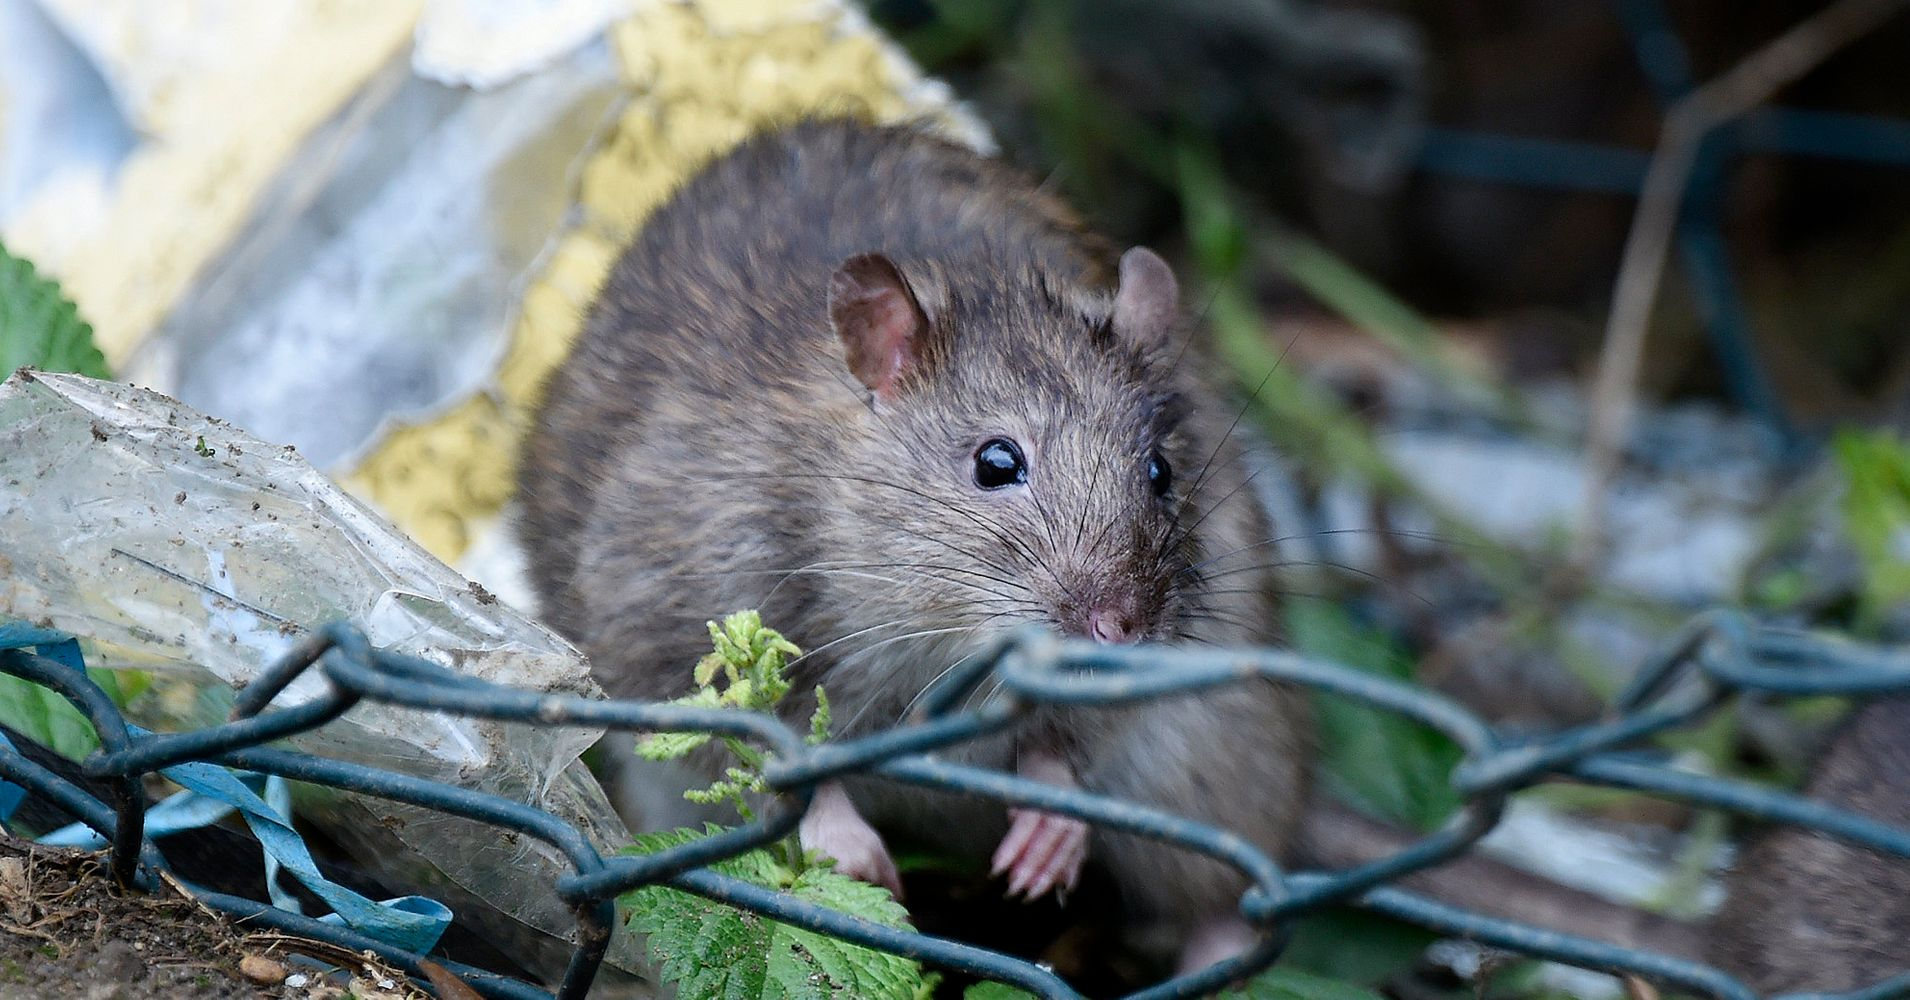 New Yorkers, Scientists Will Pay $1,000 To Study Your Rat Infestation